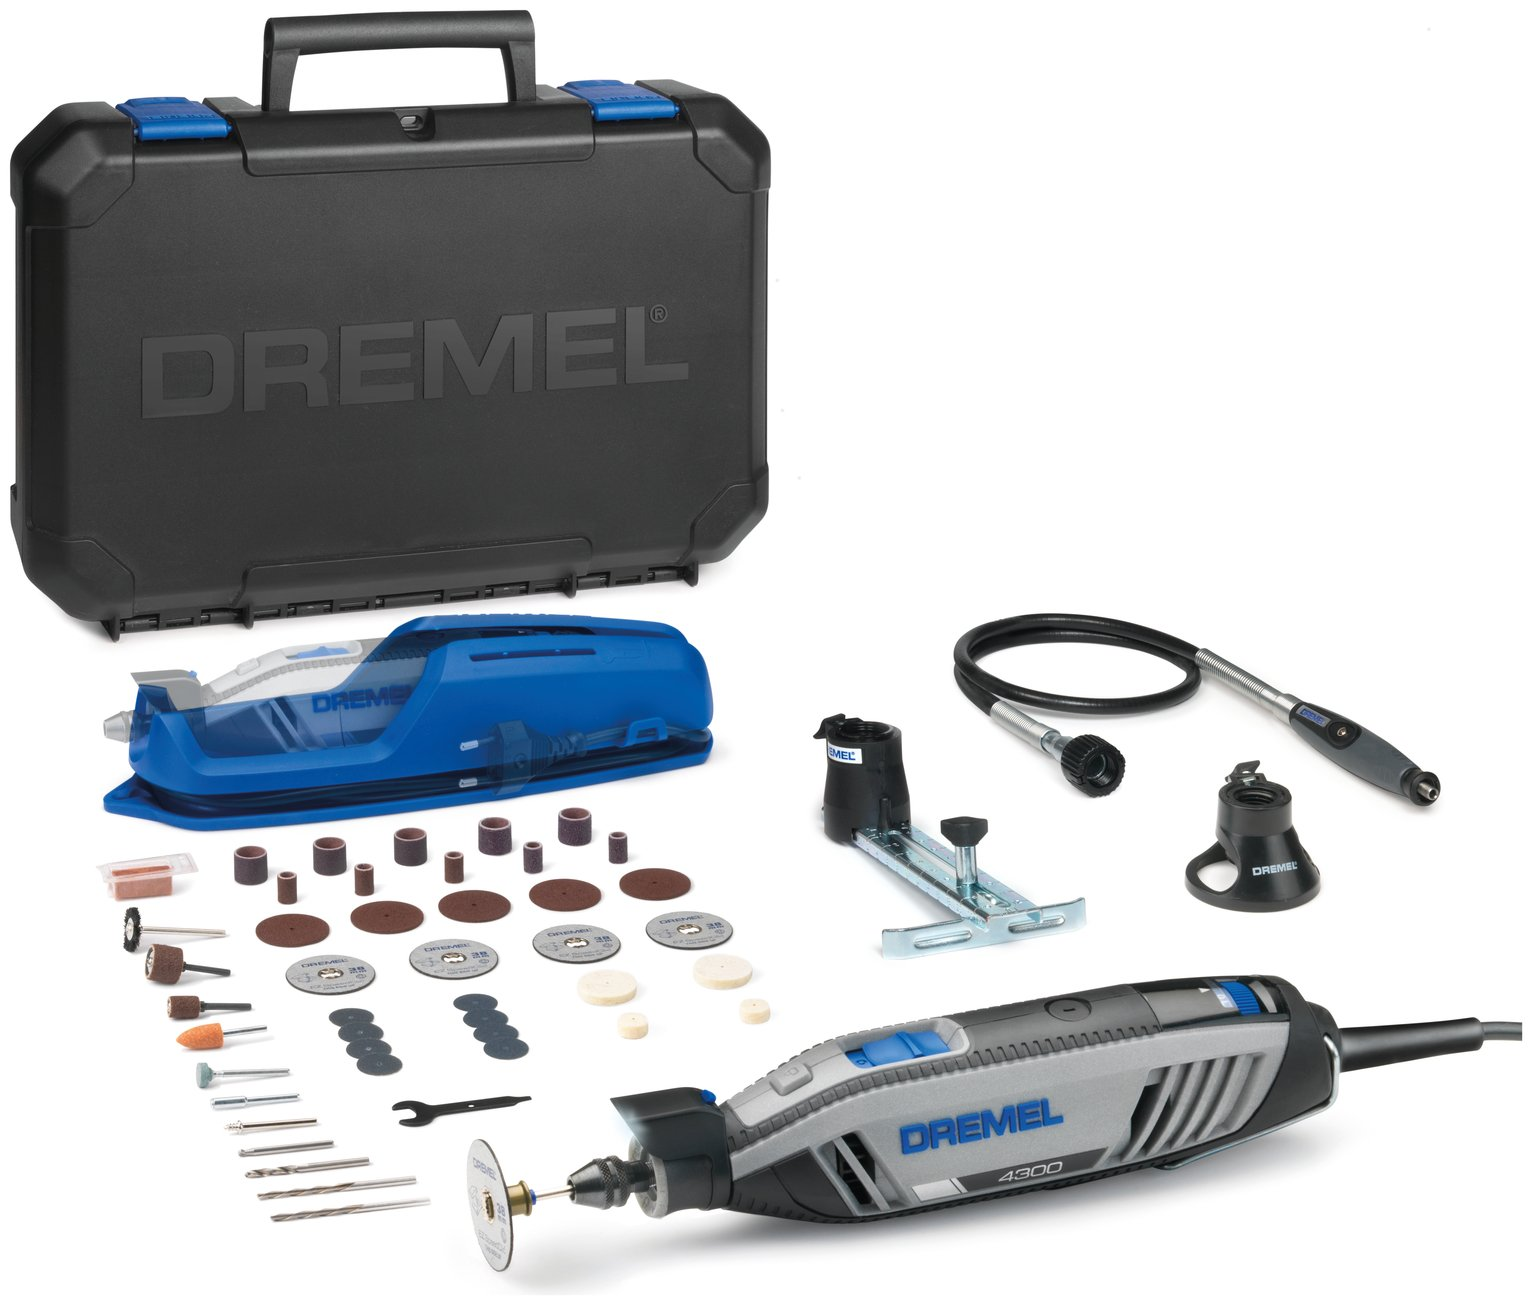 Image of Dremel 4300-3/45 Multi-Tool Kit with EZ Wrap and Case